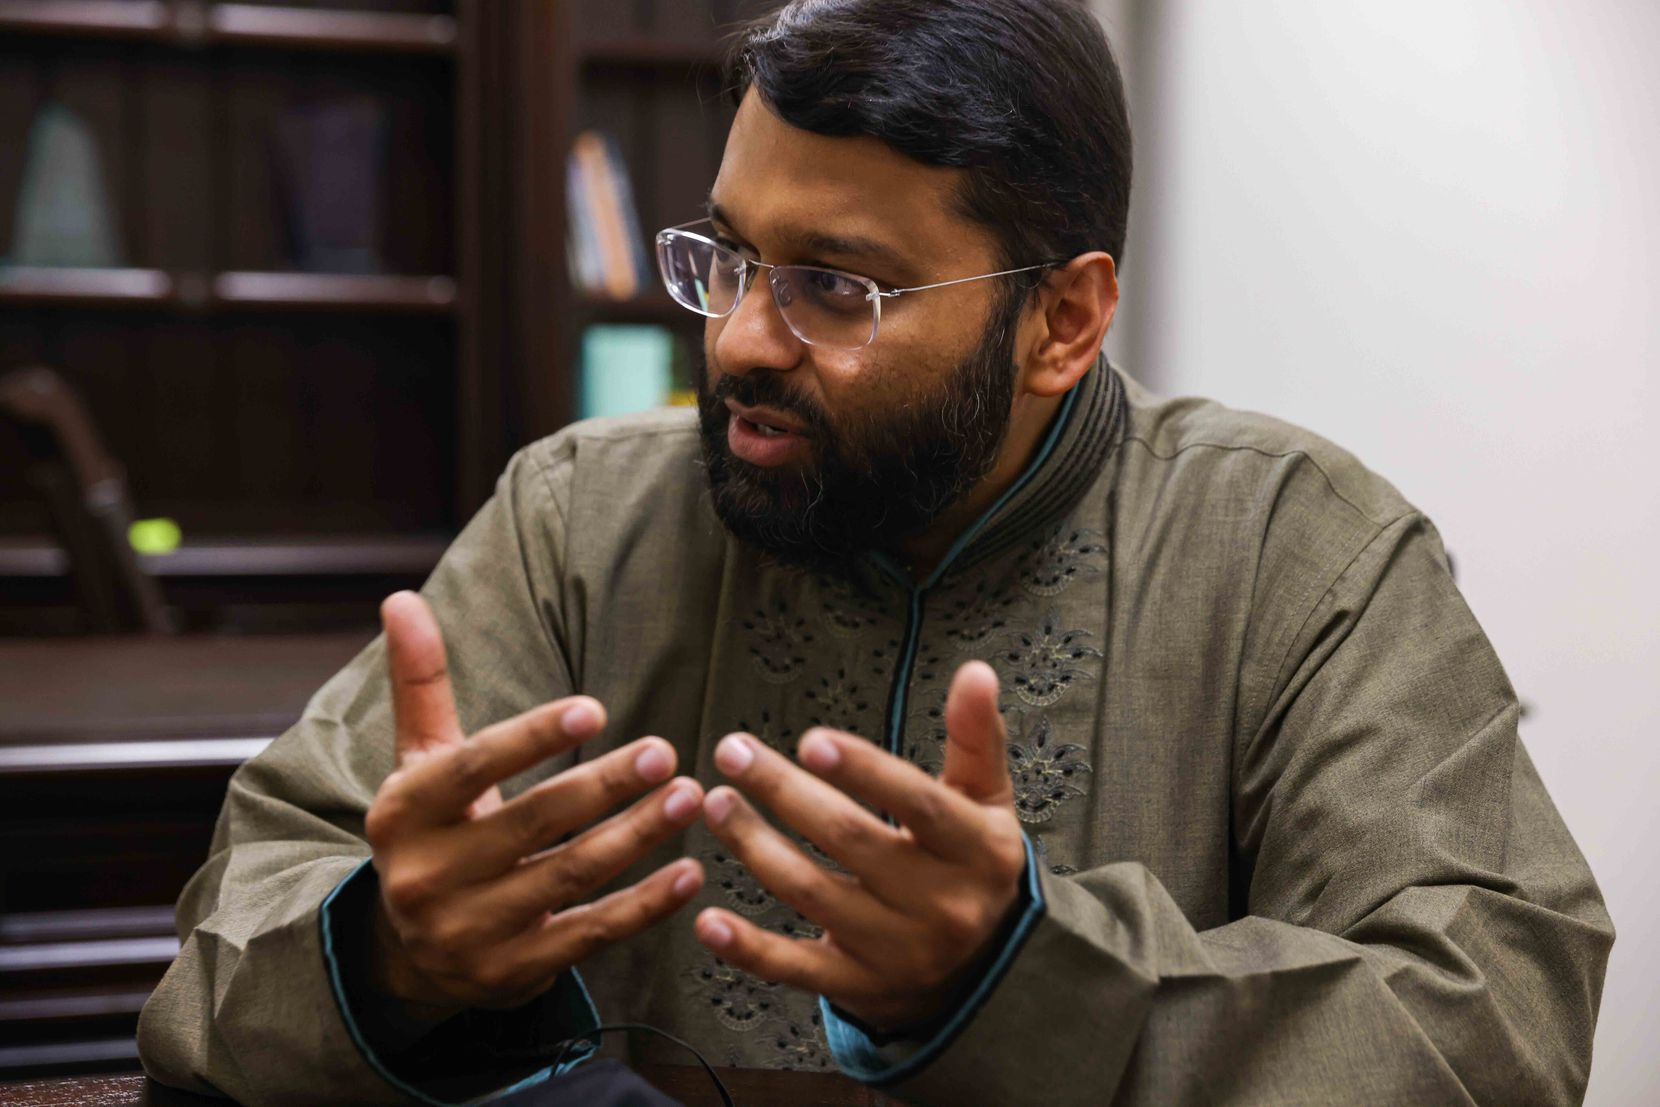 Yasir Qadhi, resident scholar at the East Plano Islamic Center, talks about post-9/11 Islamophobia and racism. The terrorist attacks helped spur many Muslims into political activism, he said.